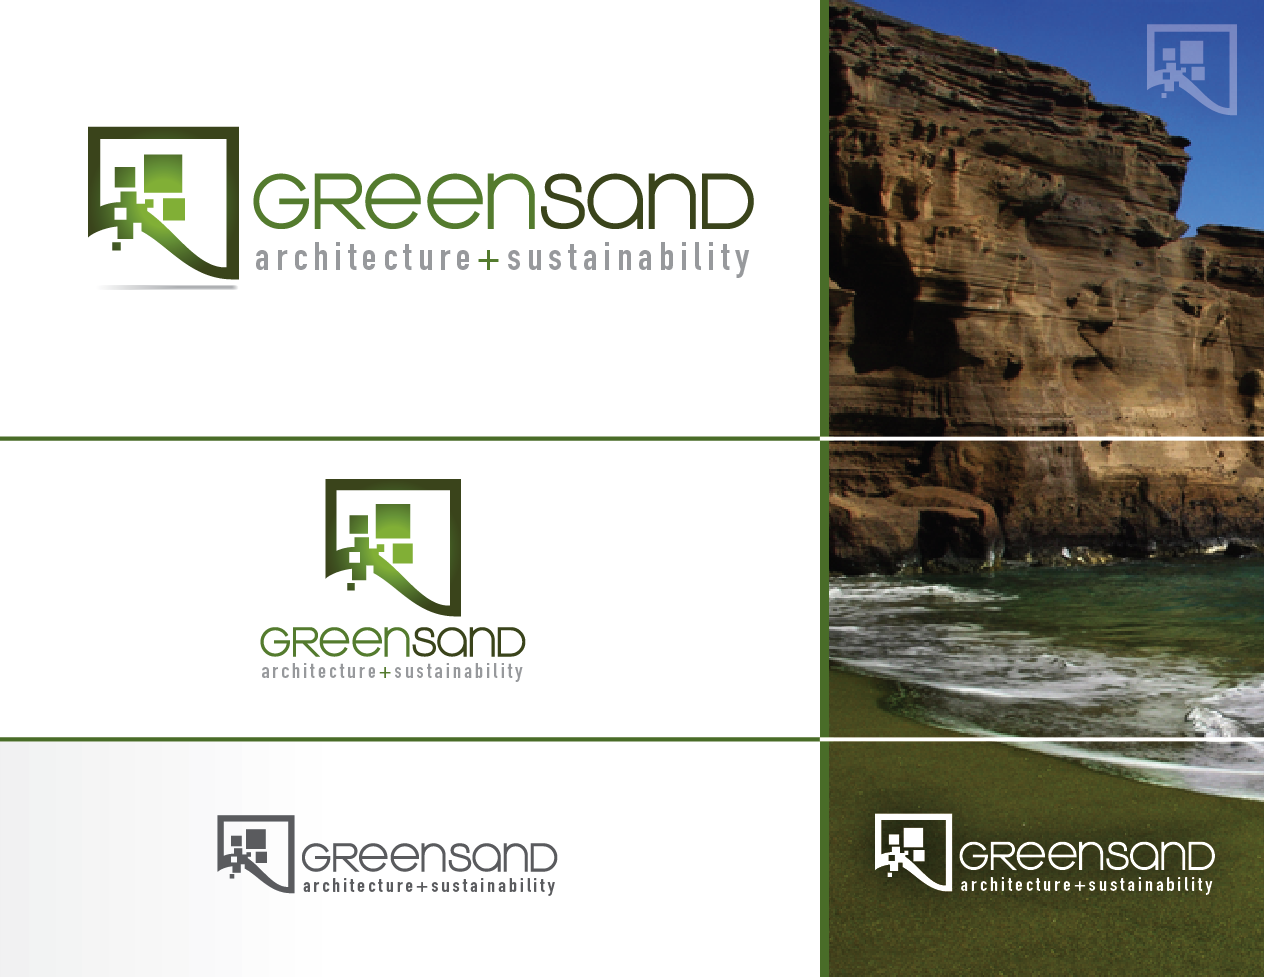 Help Green Sand Inc. Architecture + Sustainability with a new logo